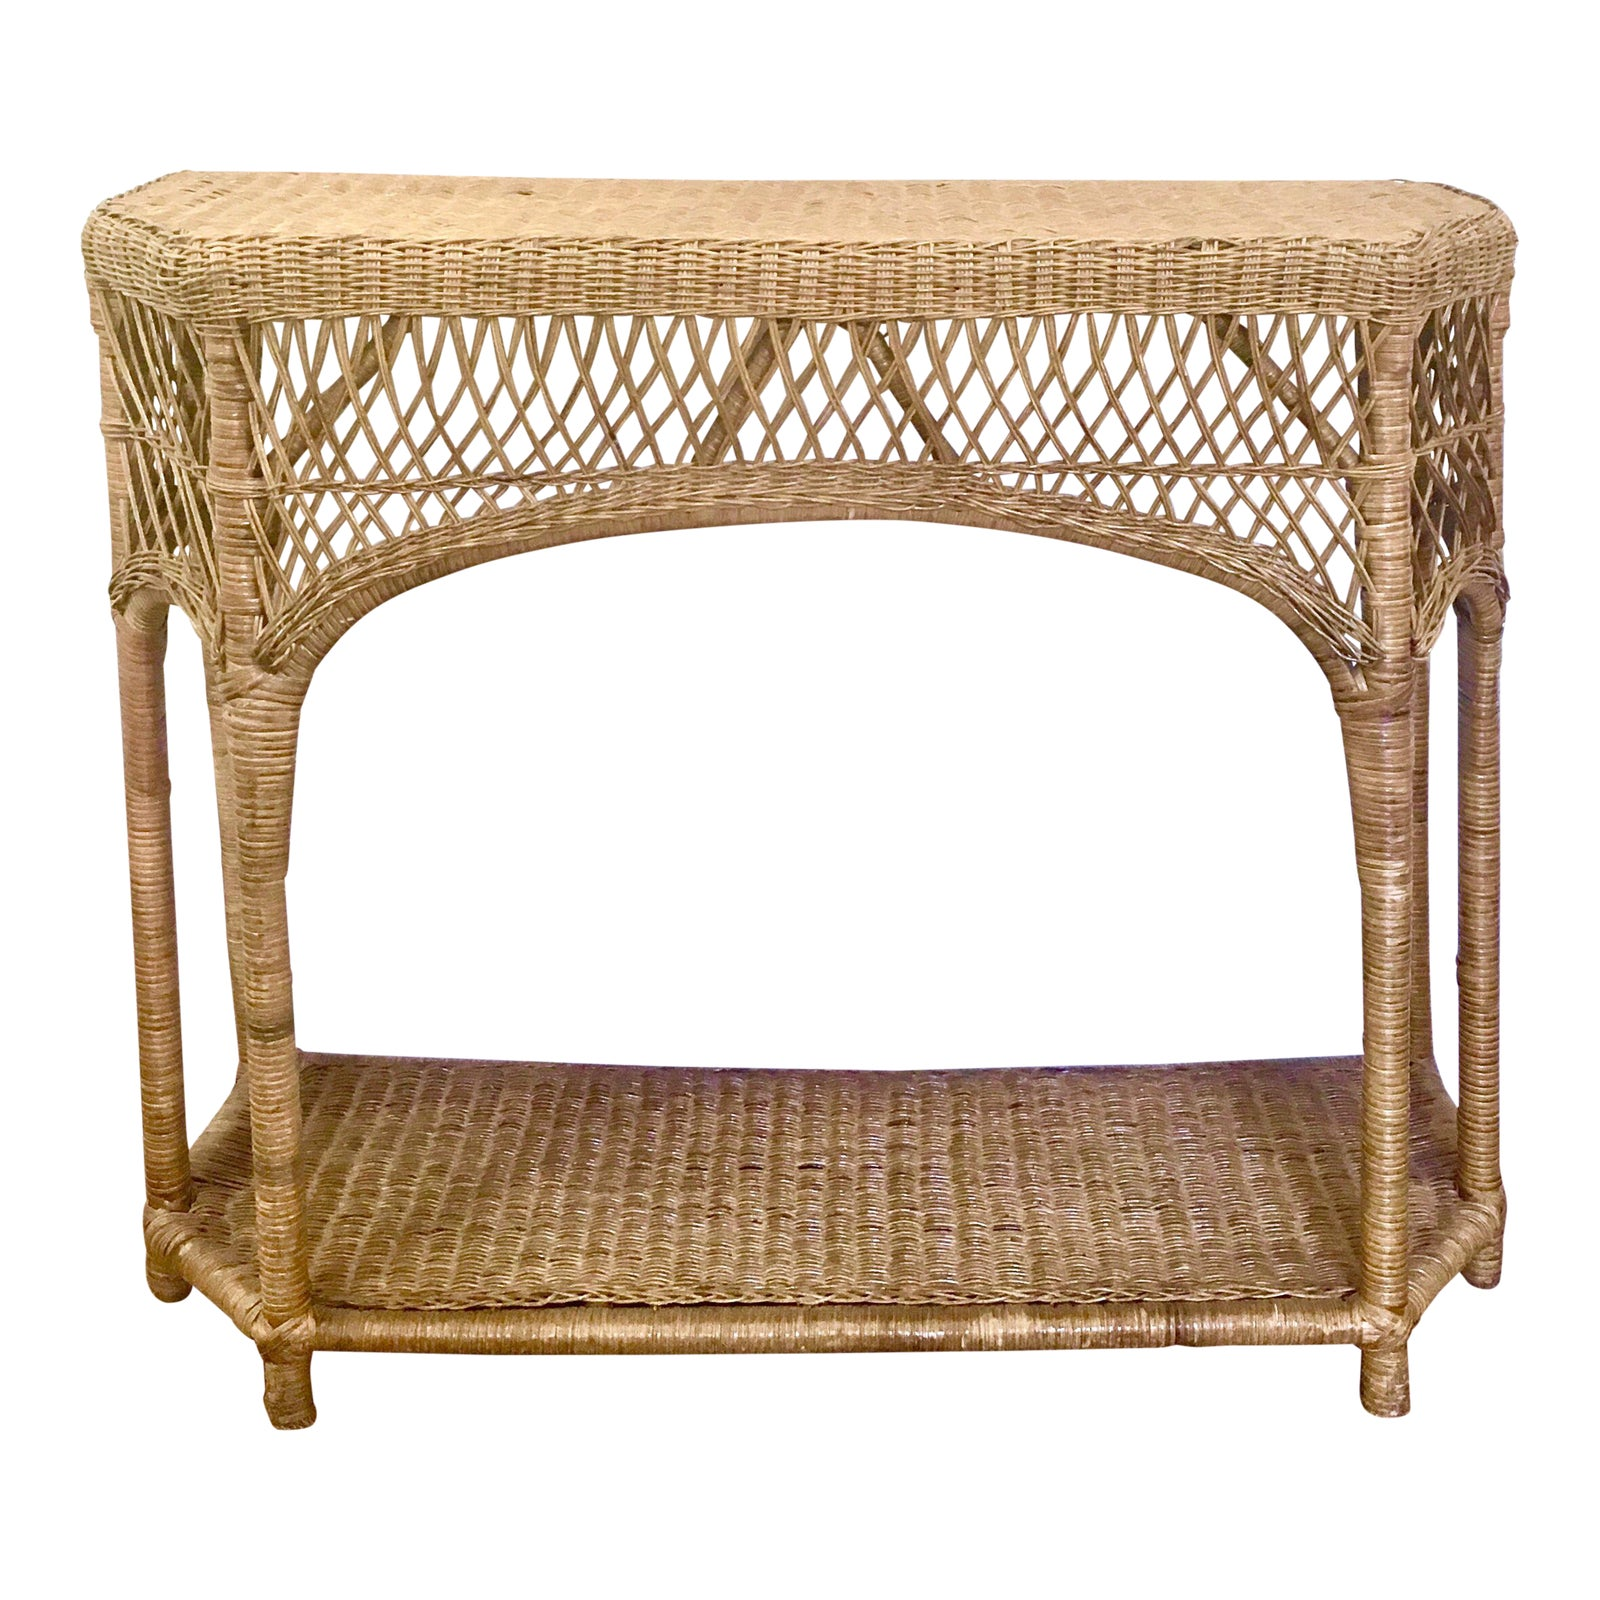 Vintage Wicker Rattan Console Table Chairish